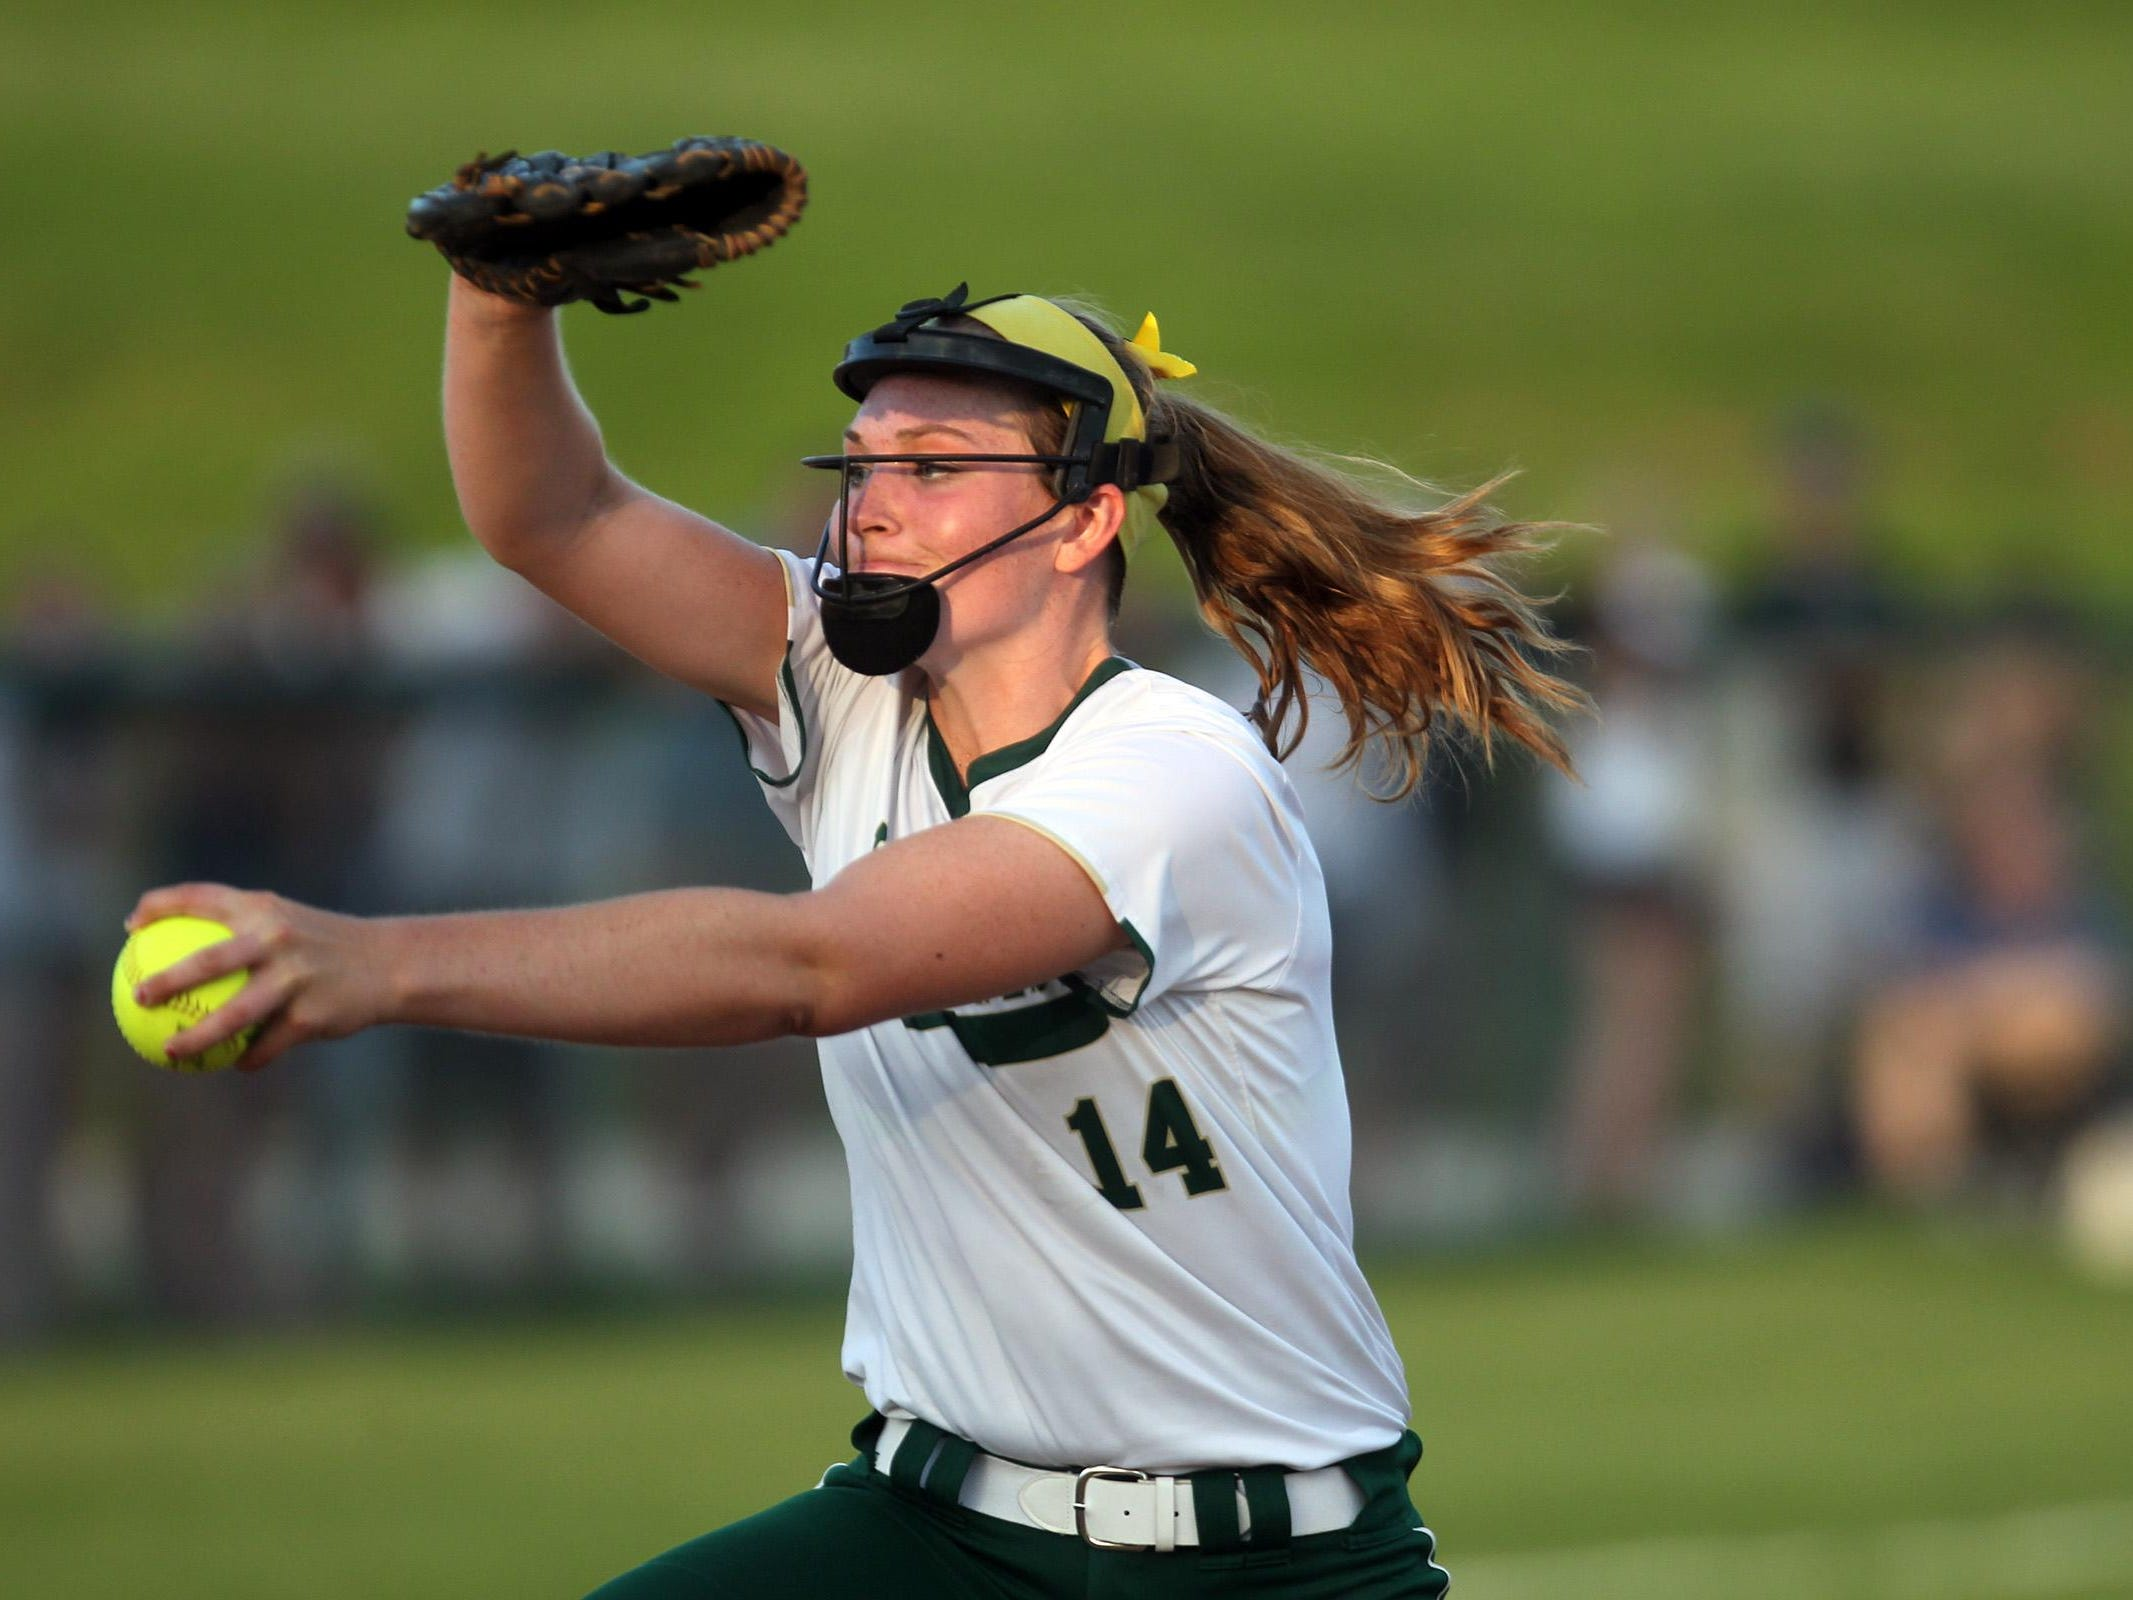 West High's Laynie Whitehead delivers a pitch during the Women of Troy's Class 5A regional championship game against Ankeny at West High on Tuesday, July 14, 2015. Ankeny won, 3-1, to head to state. David Scrivner / Iowa City Press-Citizen